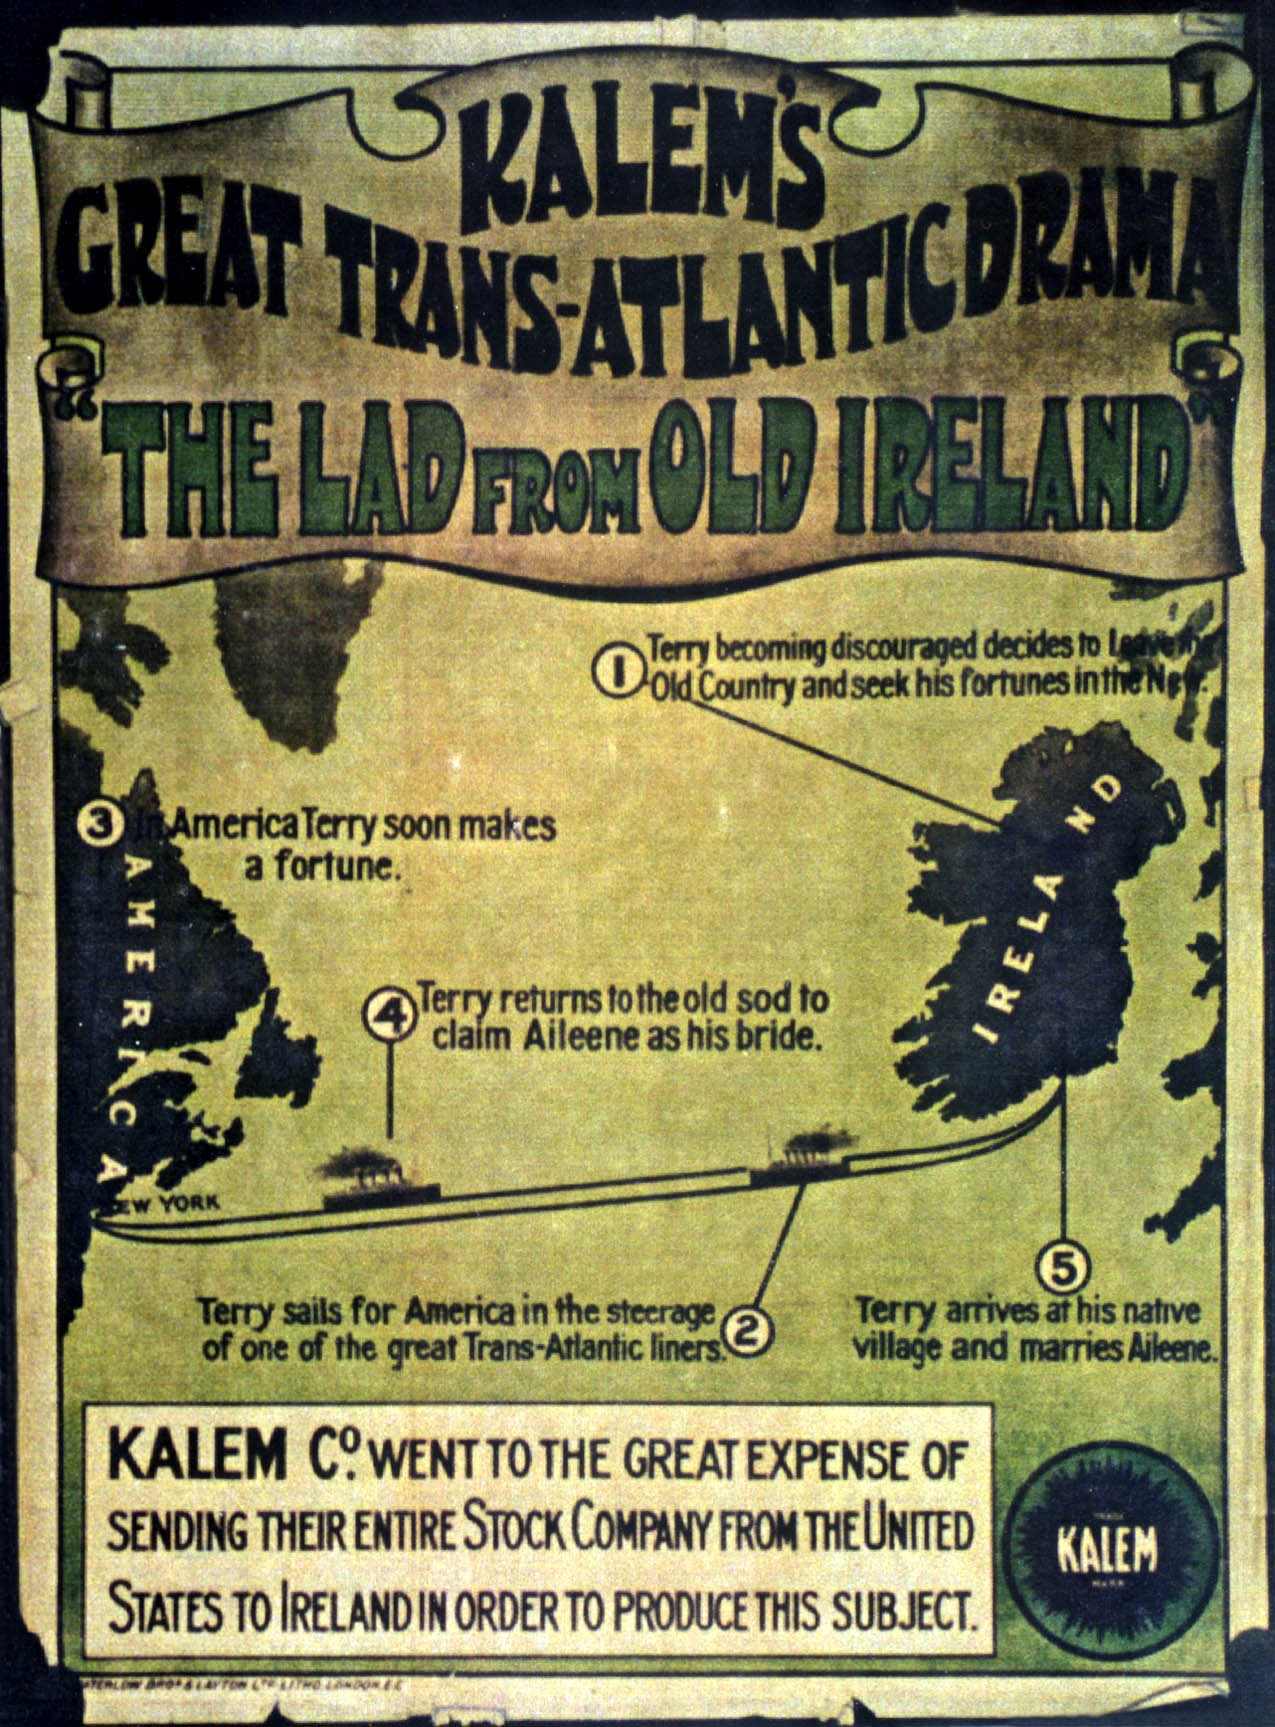 Blazing the Trail: The O'Kalems in Ireland